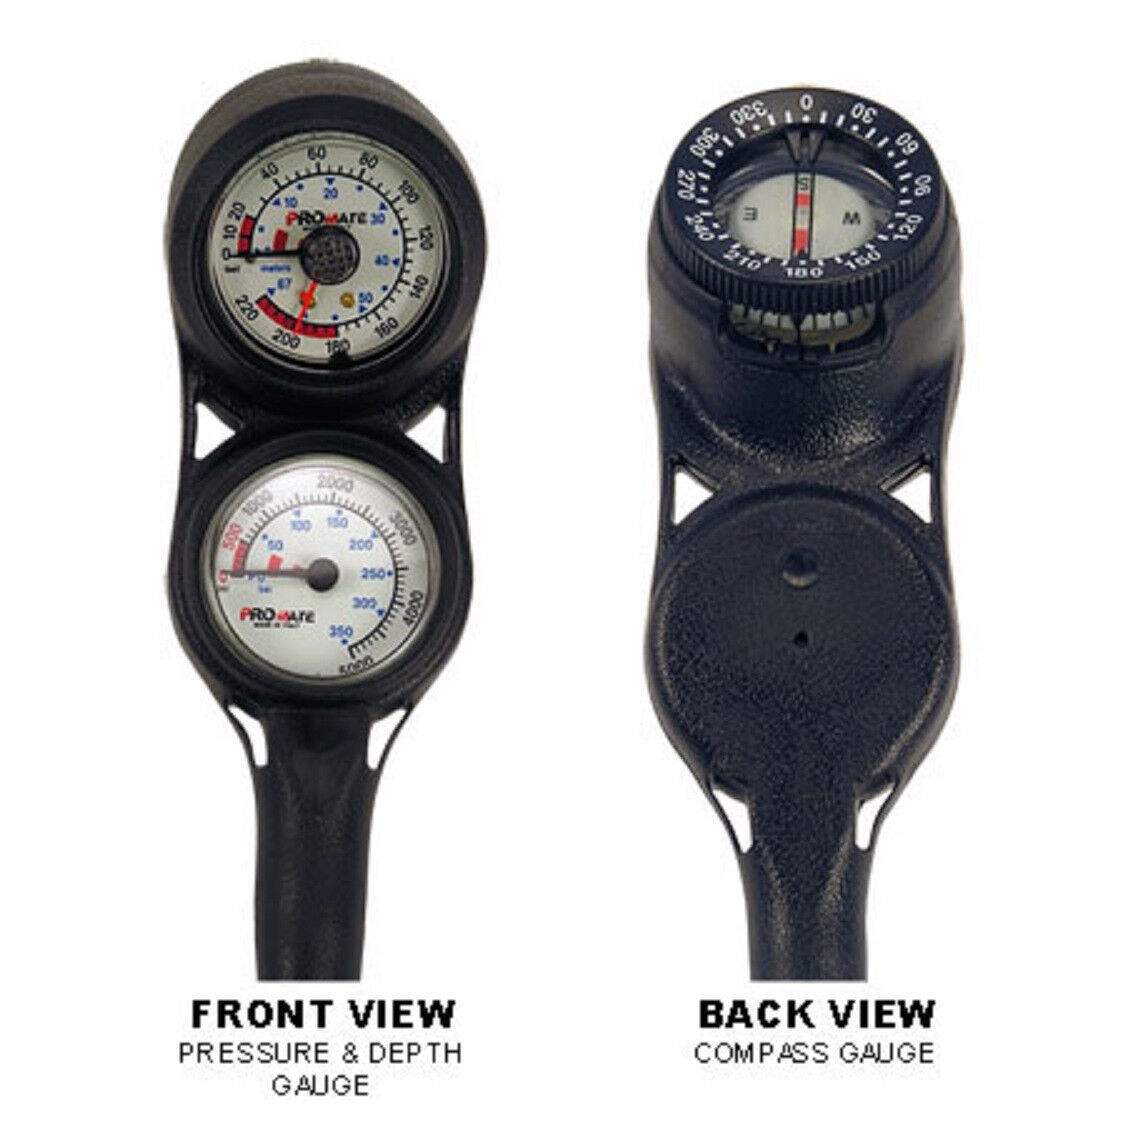 NEW Compact Scuba Dive Brass SPG and Depth Gauge w  Compass Console PSI & BAR